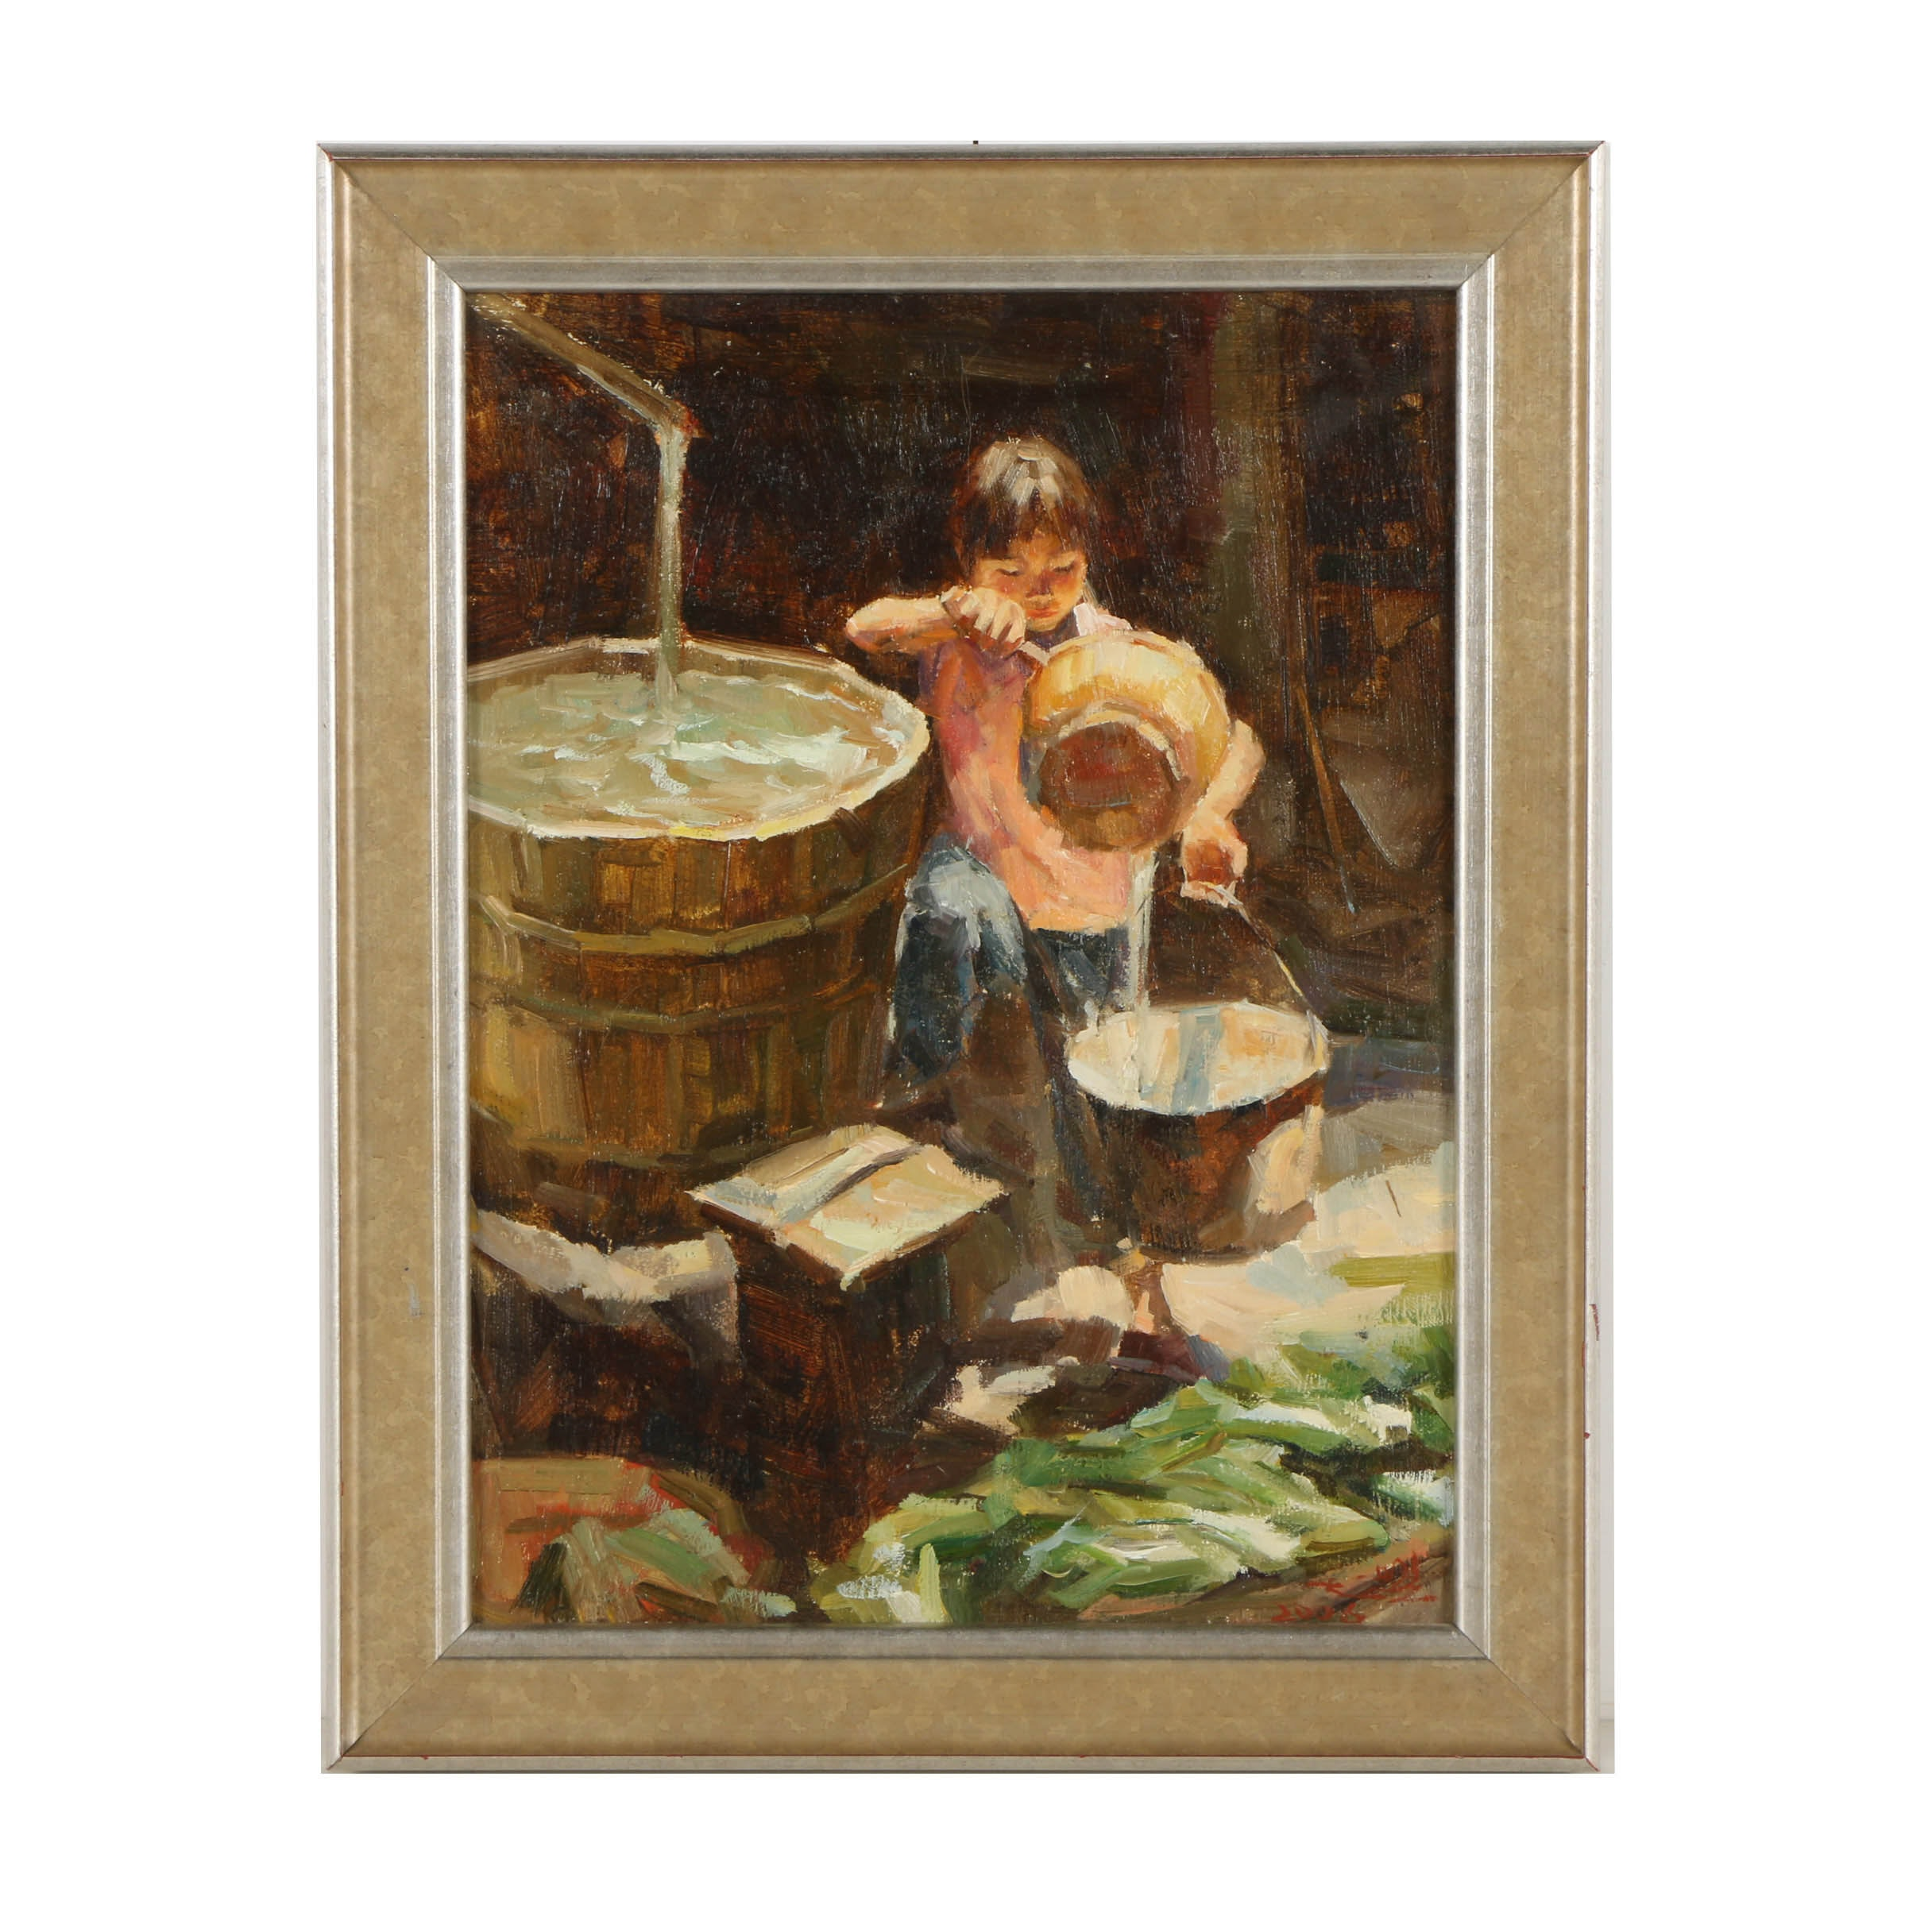 Oil Painting on Canvas  of a Girl with Water Bucket